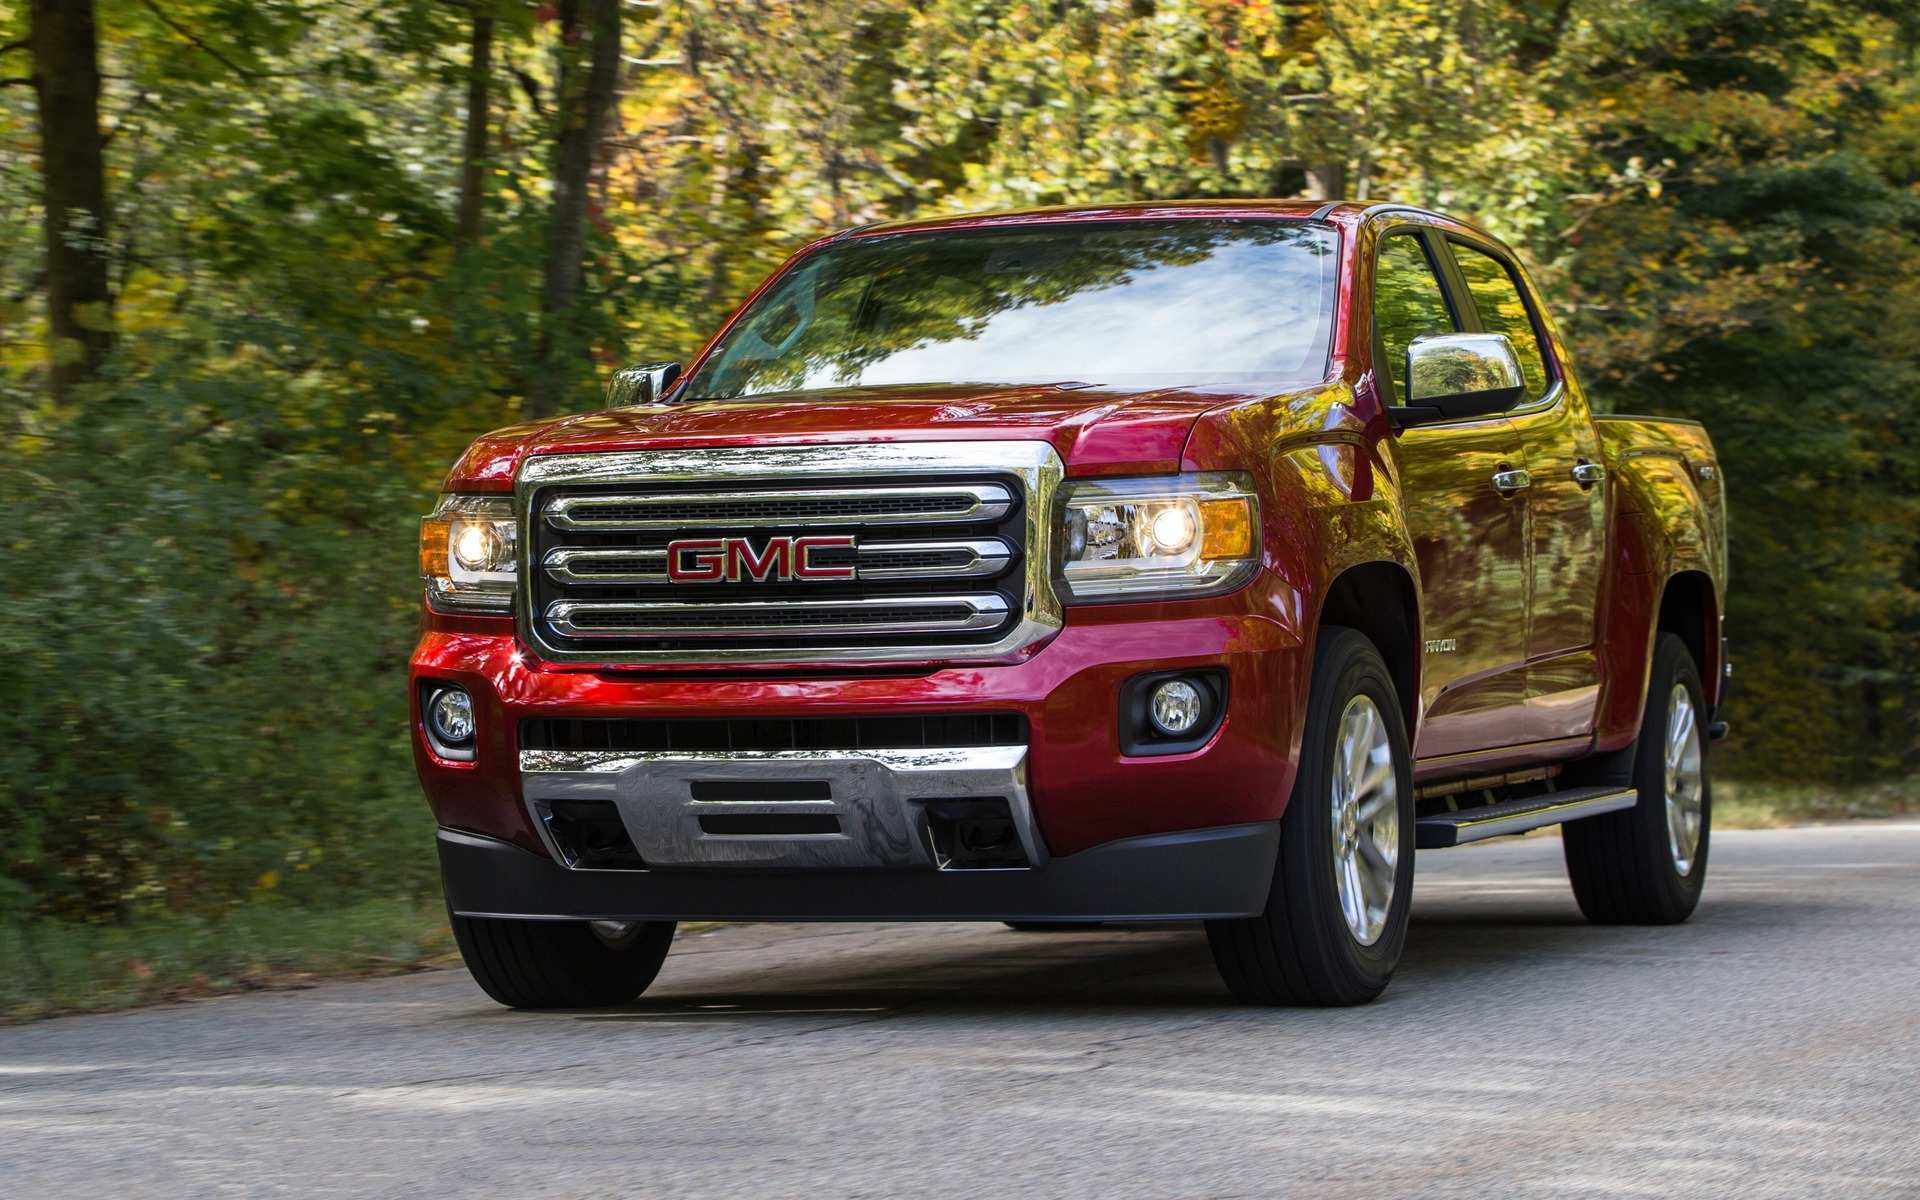 18 New The Gmc Colorado 2019 Redesign Price And Review Photos for The Gmc Colorado 2019 Redesign Price And Review